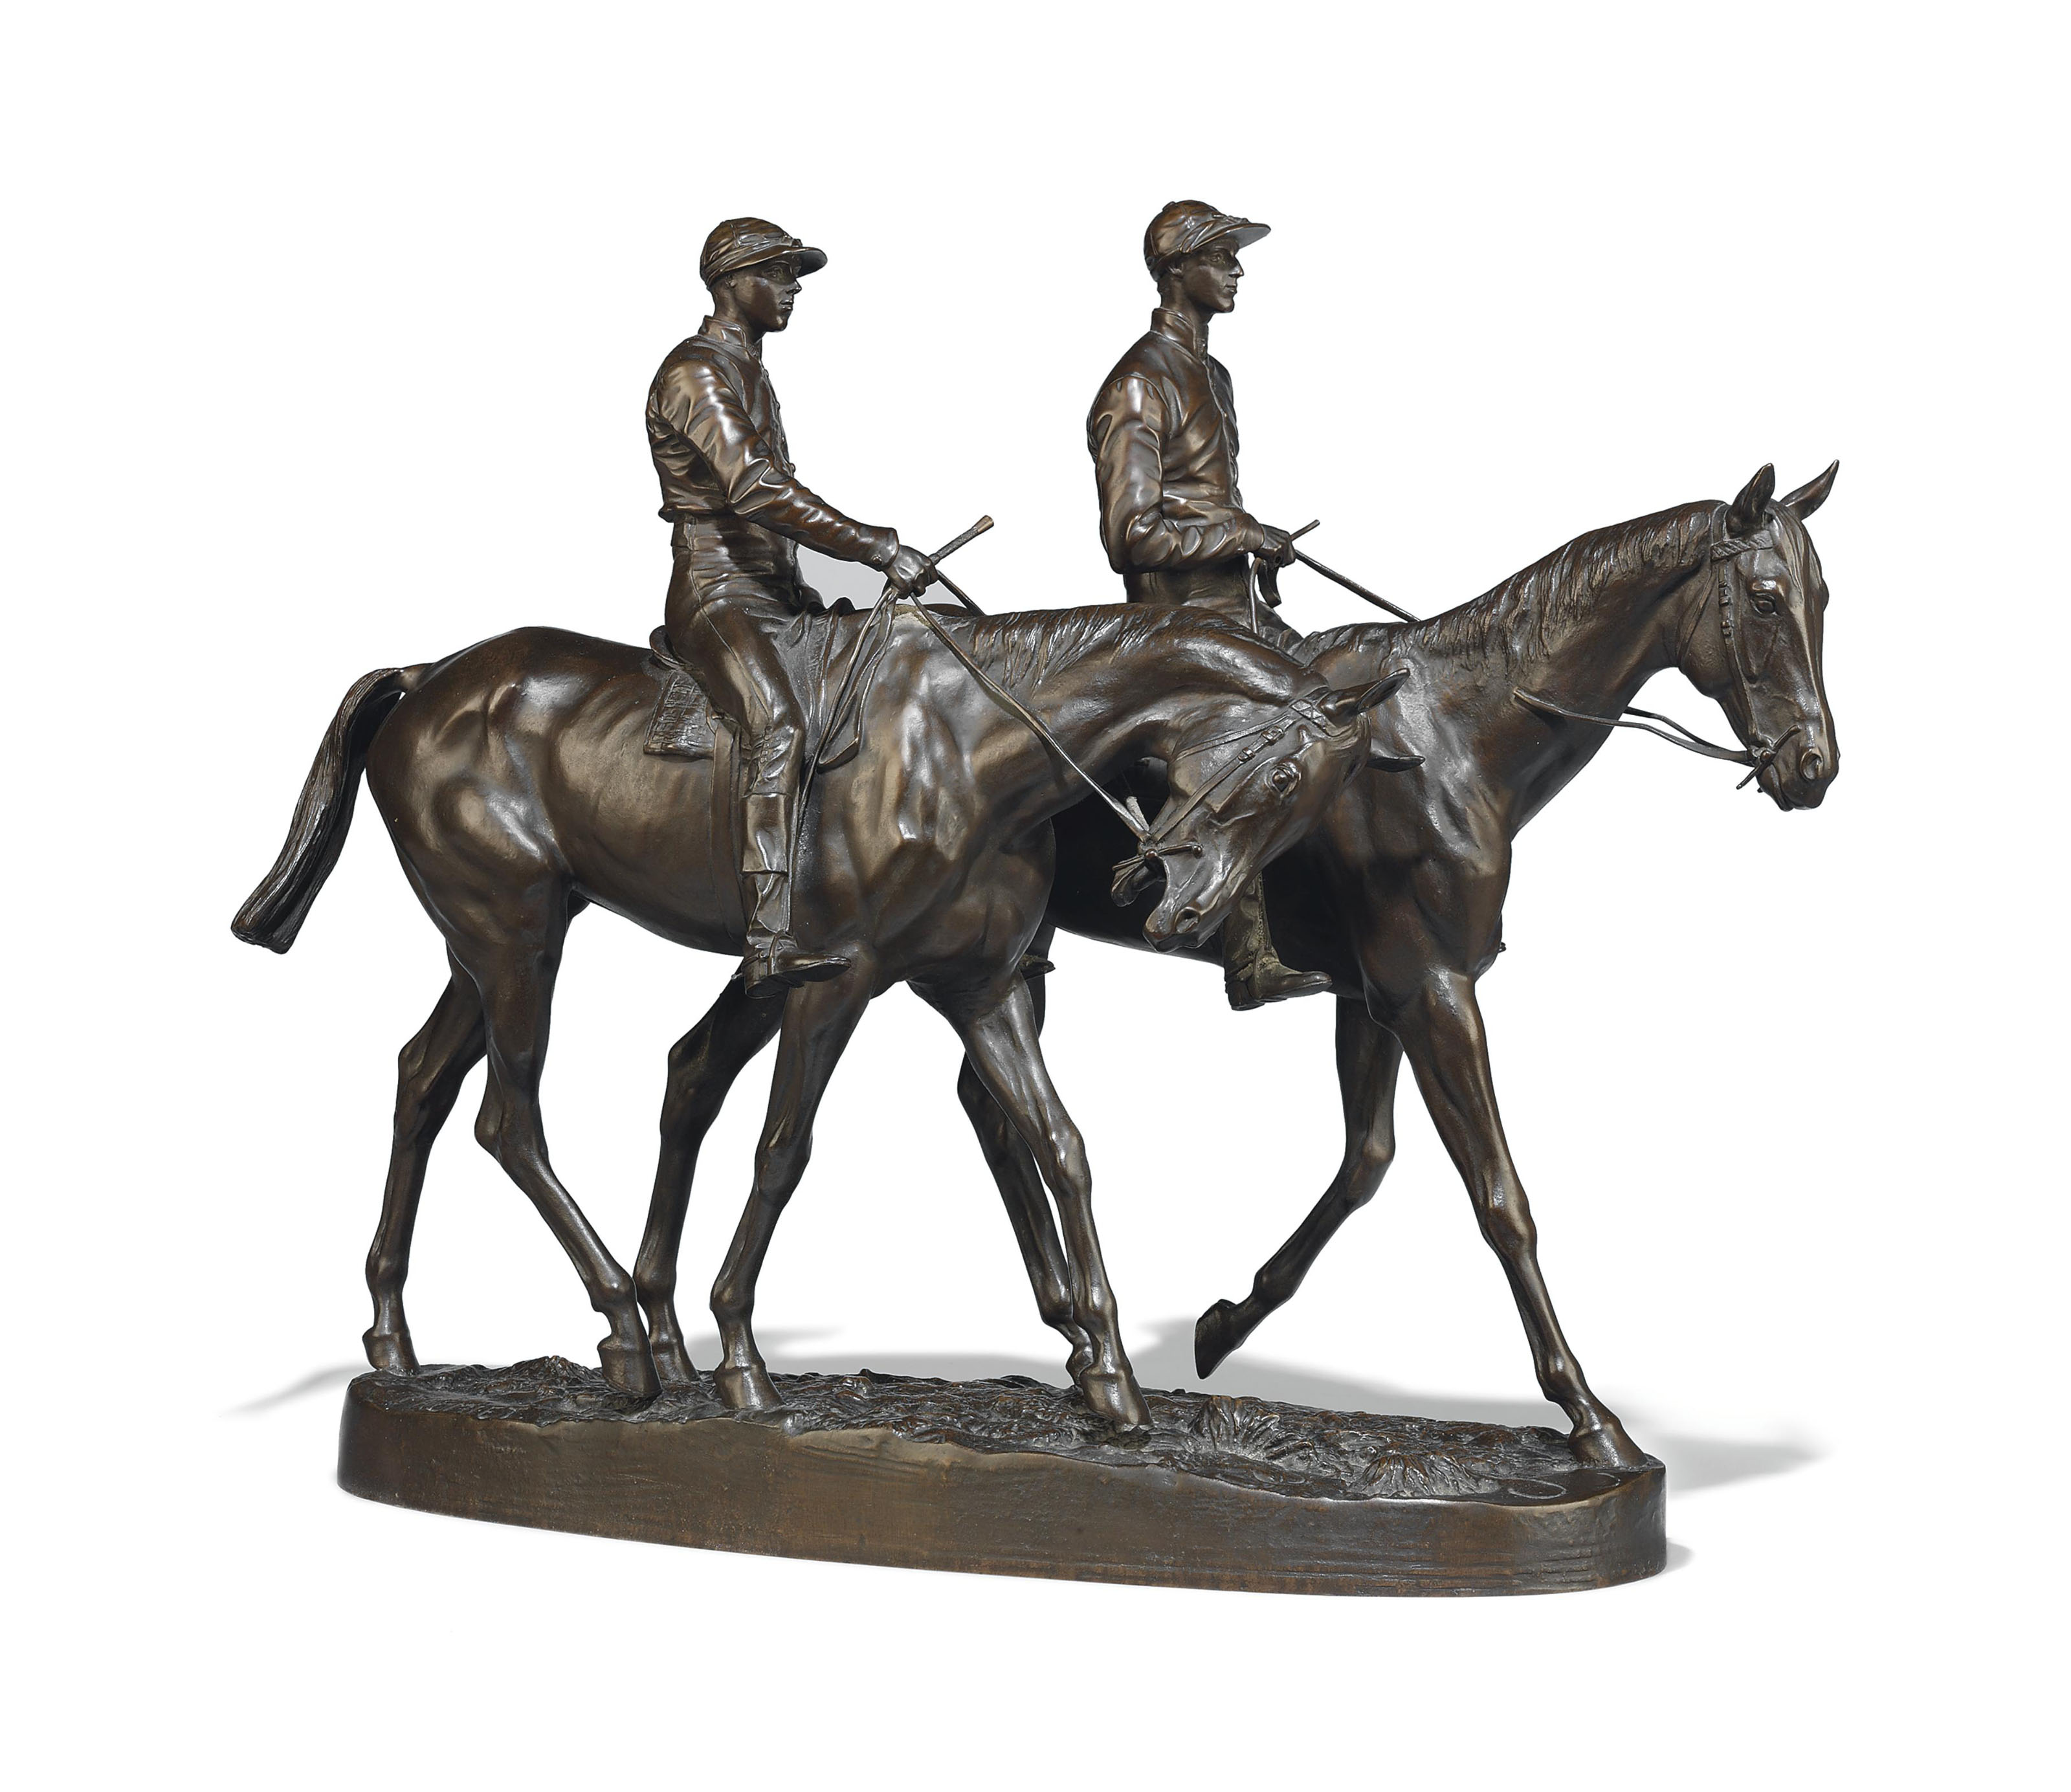 A FRENCH BRONZE EQUESTRIAN GROUP ENTITLED 'CHEVAUX DE COURSE ET JOCKEYS' (A PAIR OF MOUNTED JOCKEYS)